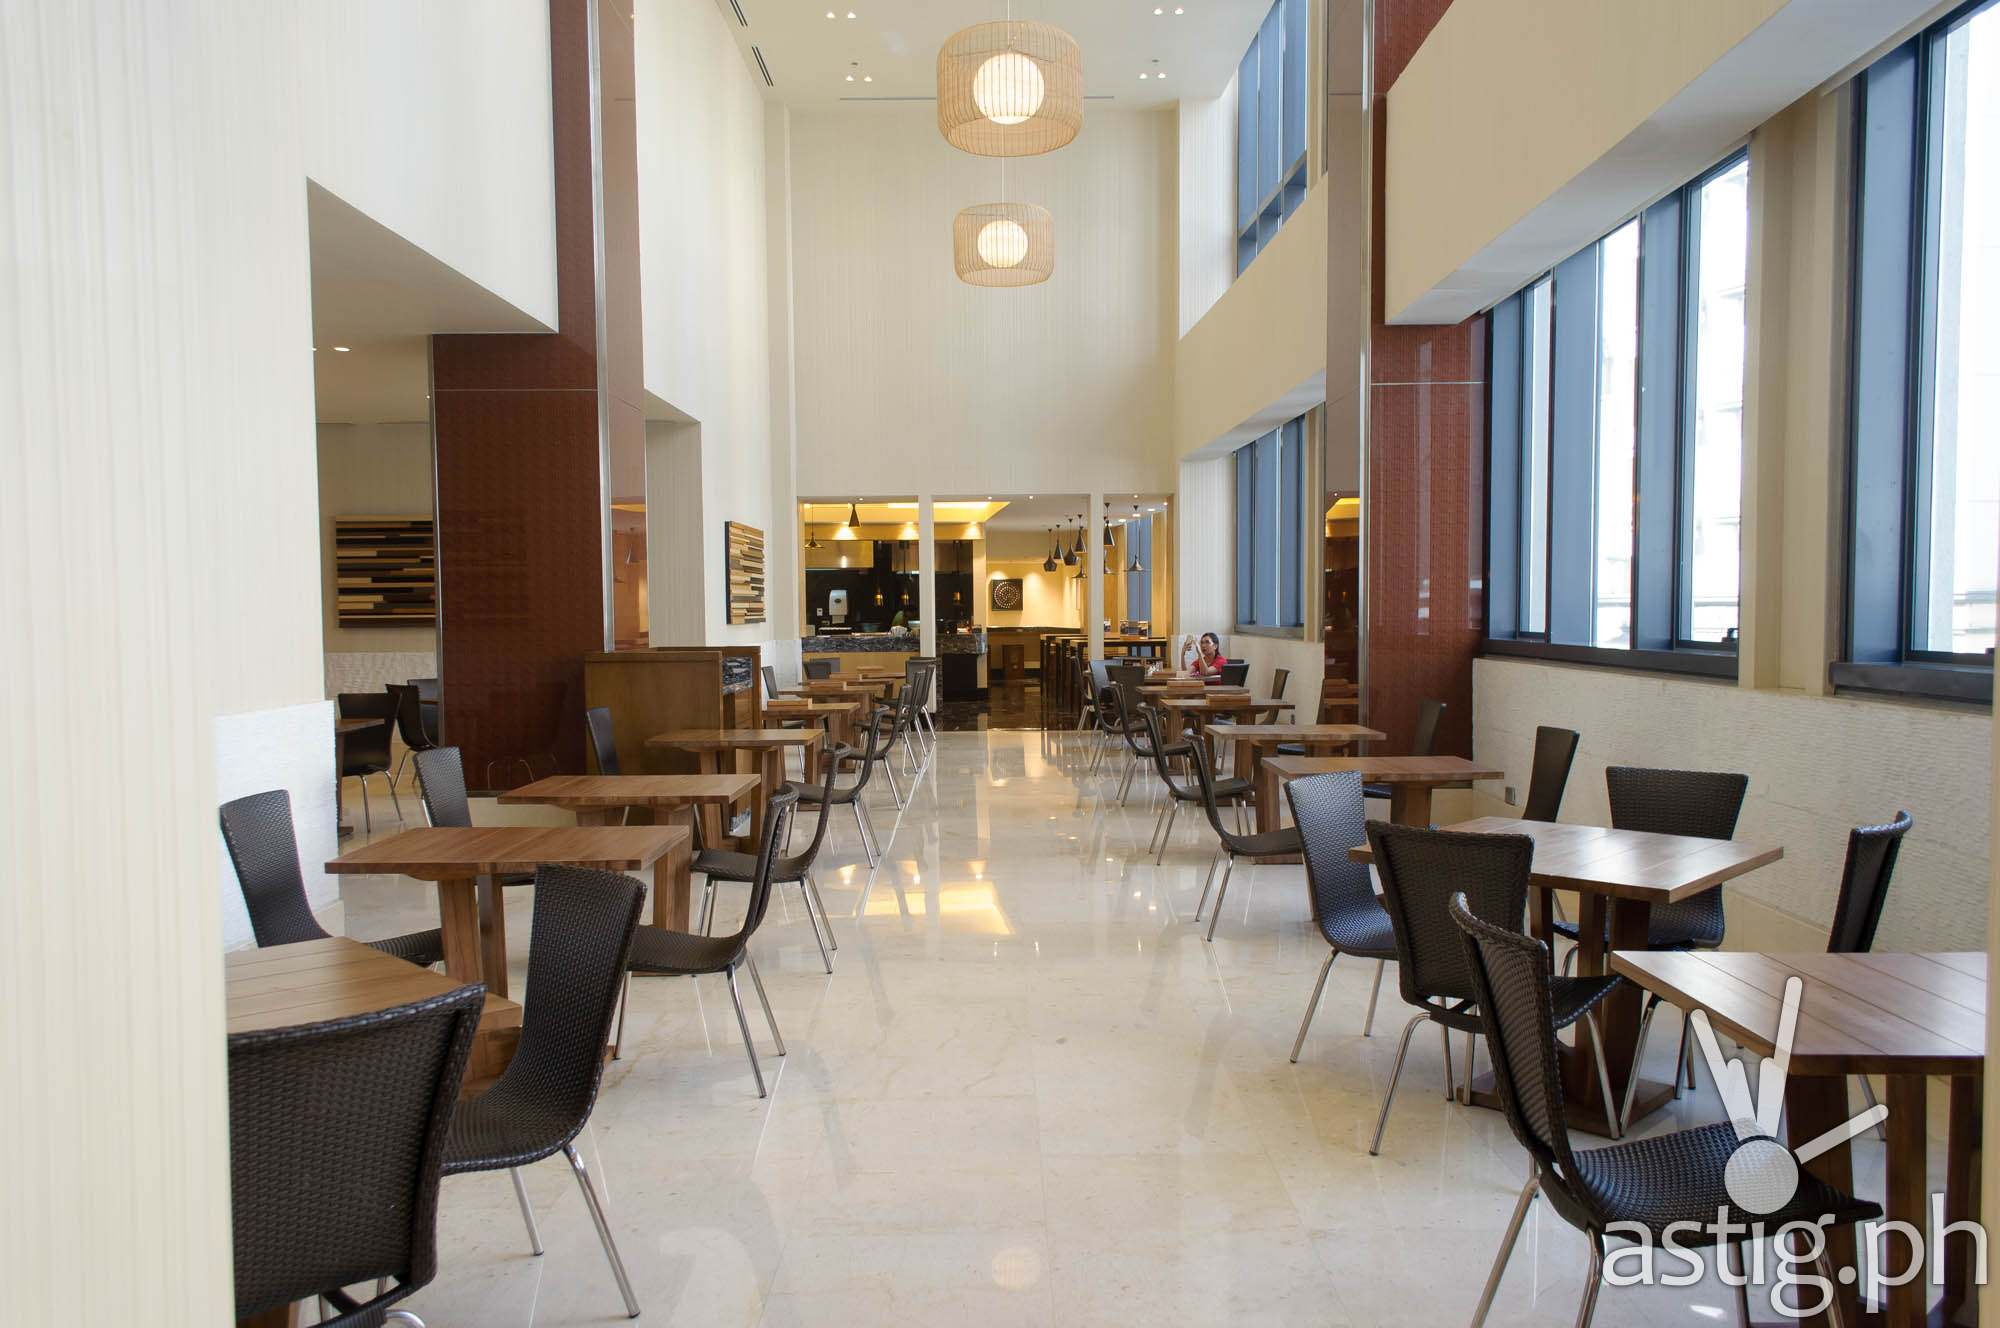 Huge, well-lit dining halls of Mian